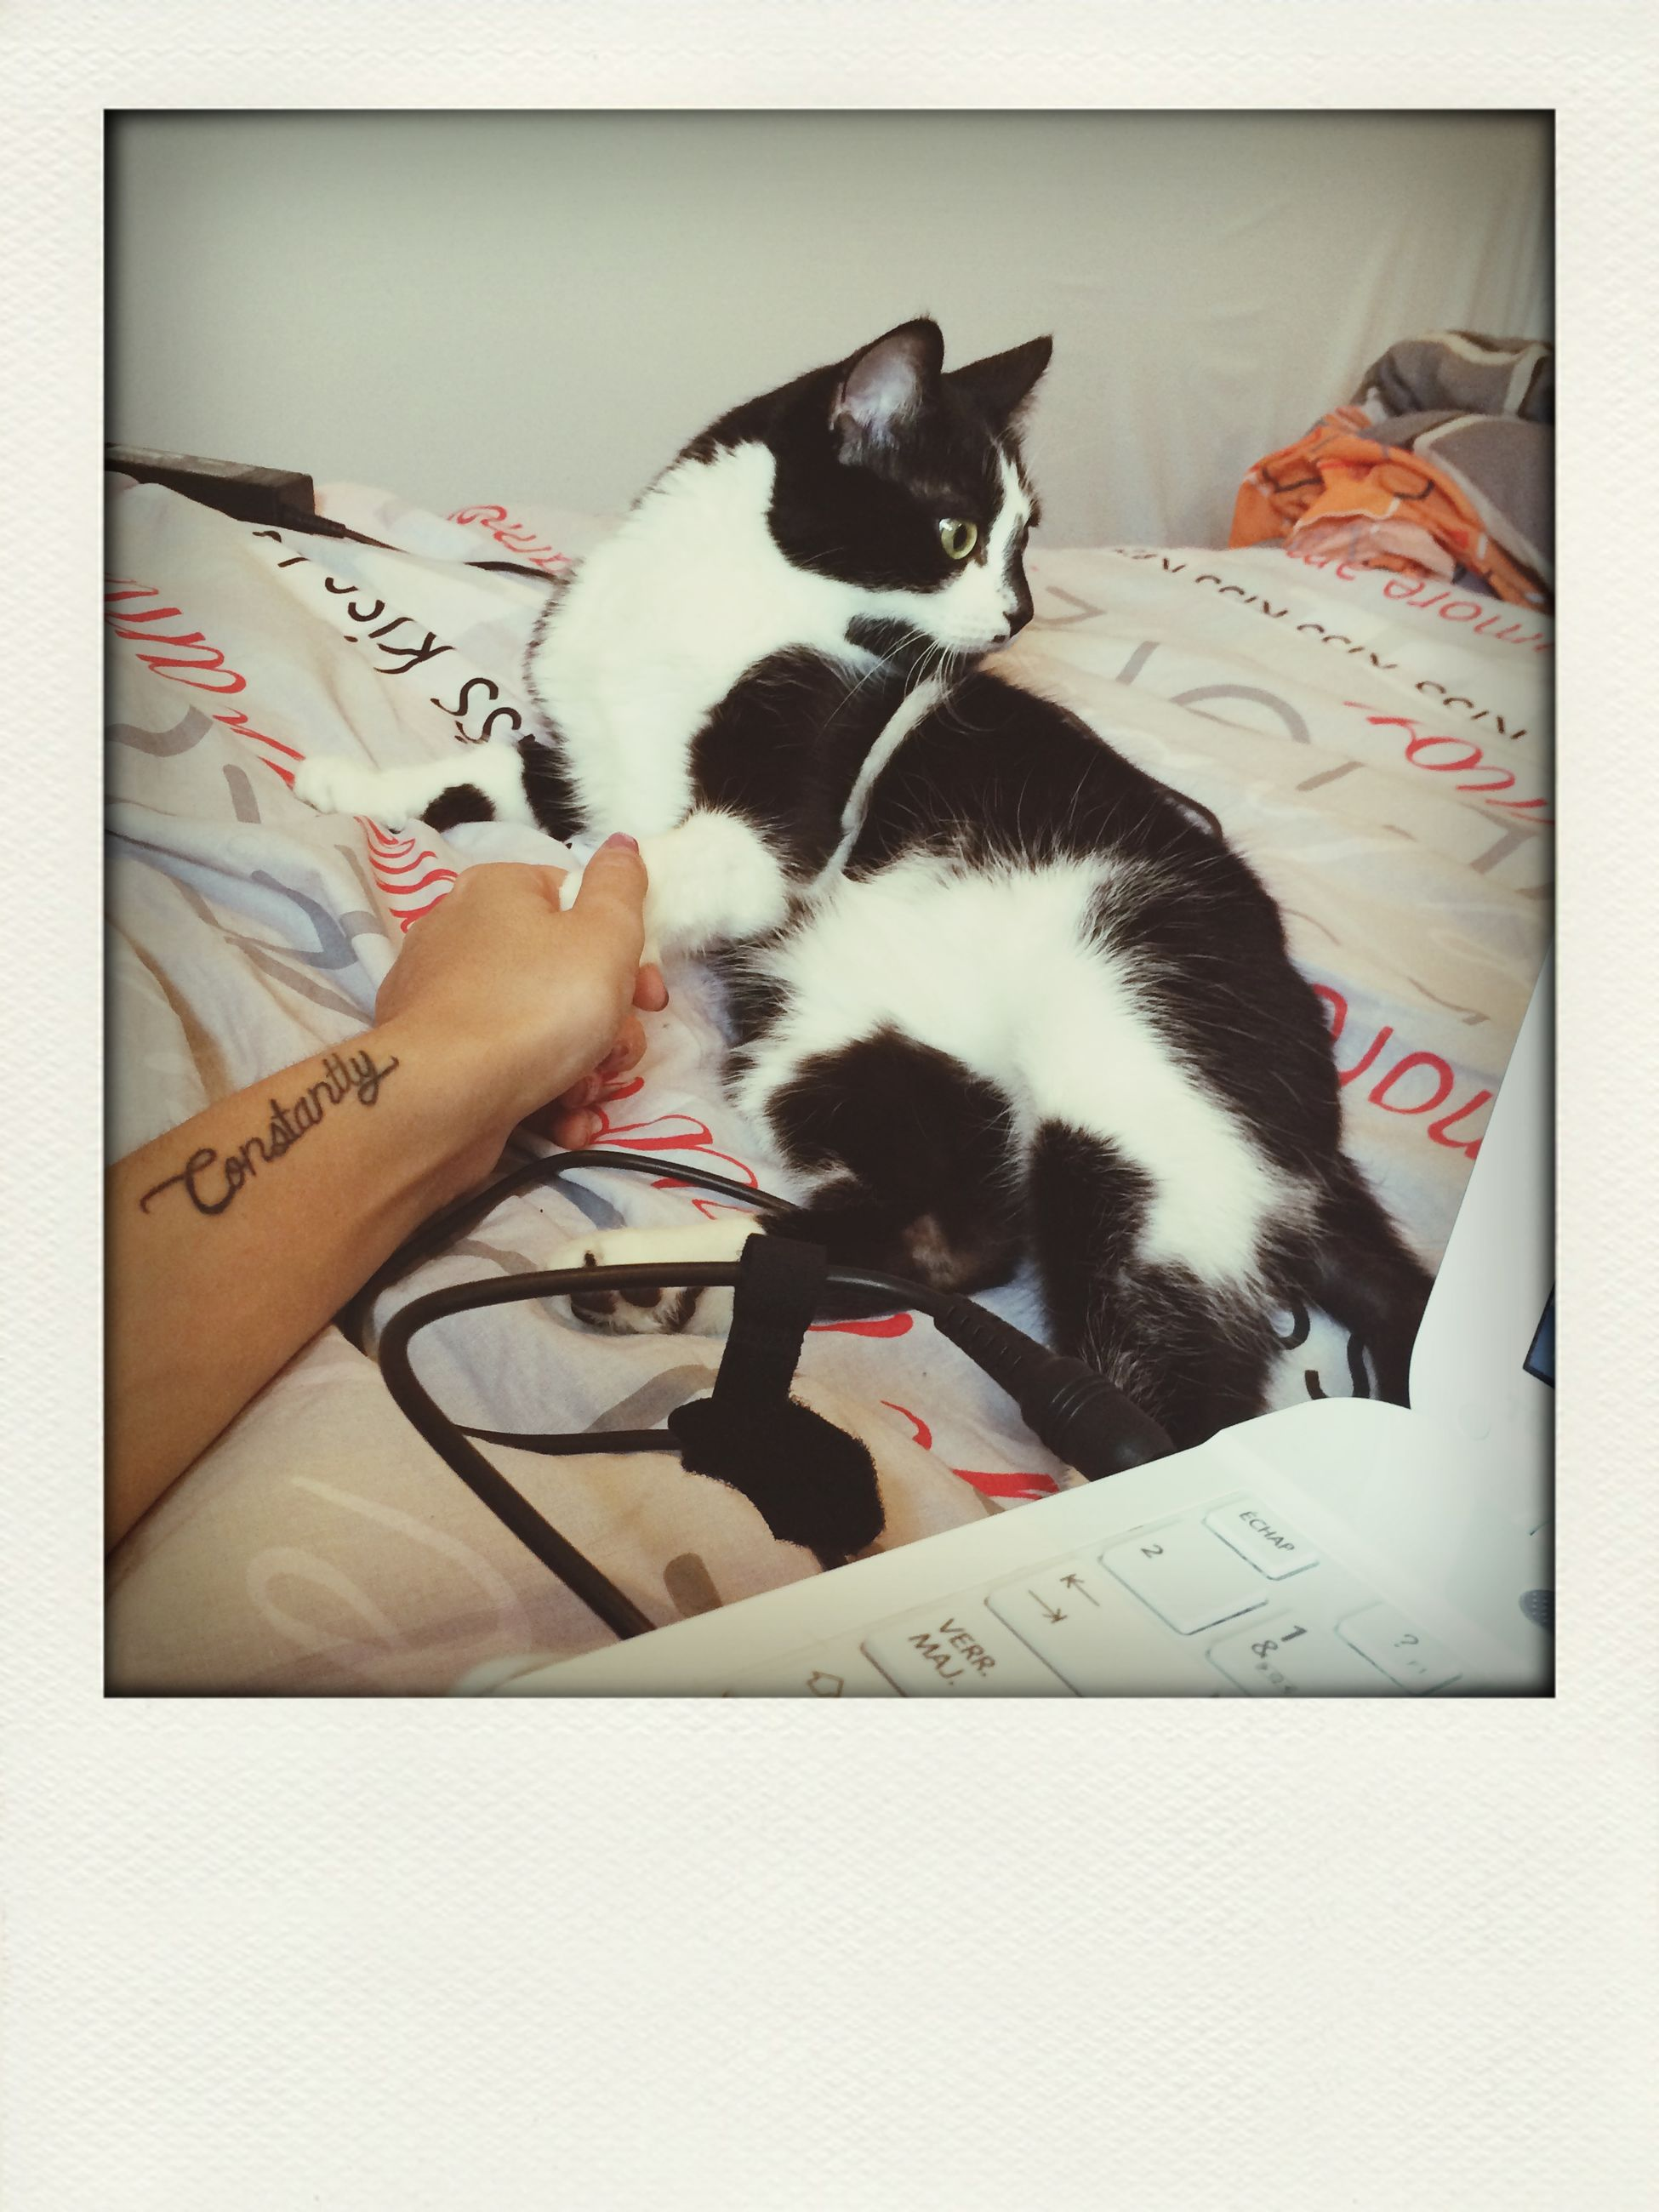 pets, domestic animals, domestic cat, indoors, cat, animal themes, one animal, mammal, relaxation, feline, bed, lying down, resting, sleeping, auto post production filter, transfer print, high angle view, pillow, home interior, bedroom